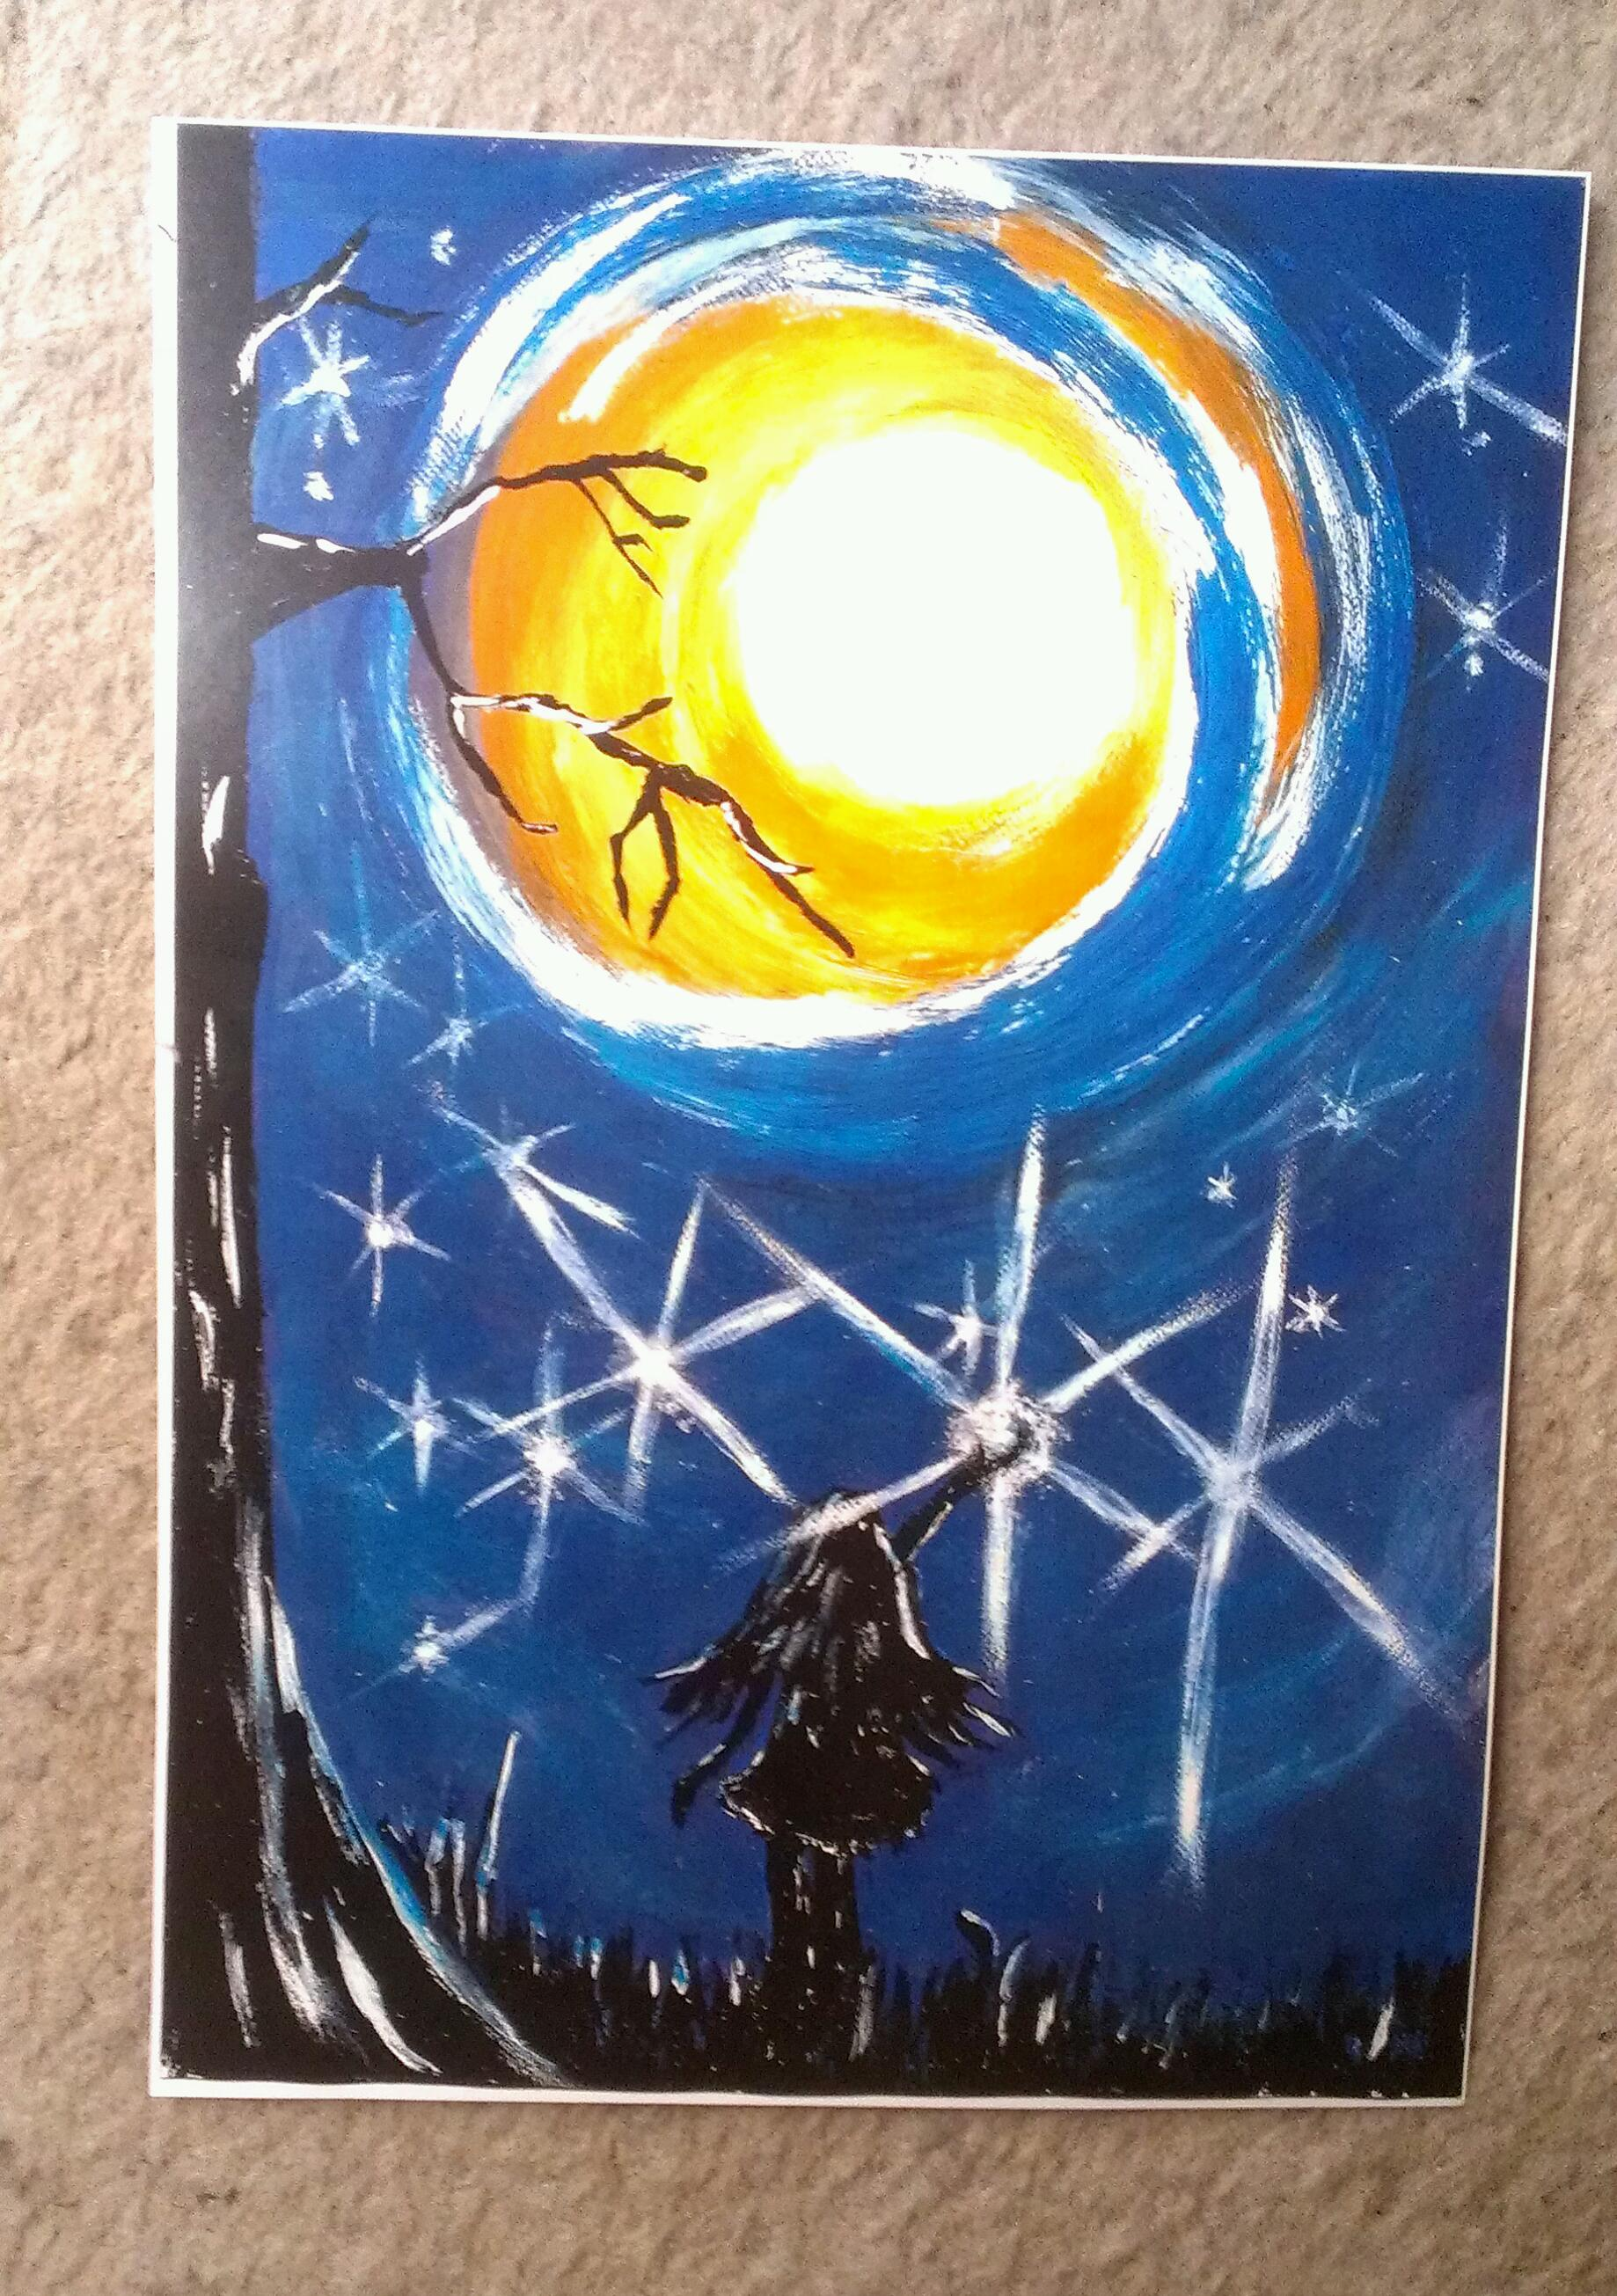 CATCH A FALLING STAR ACRYLICS ORIGINAL PAINTING A4